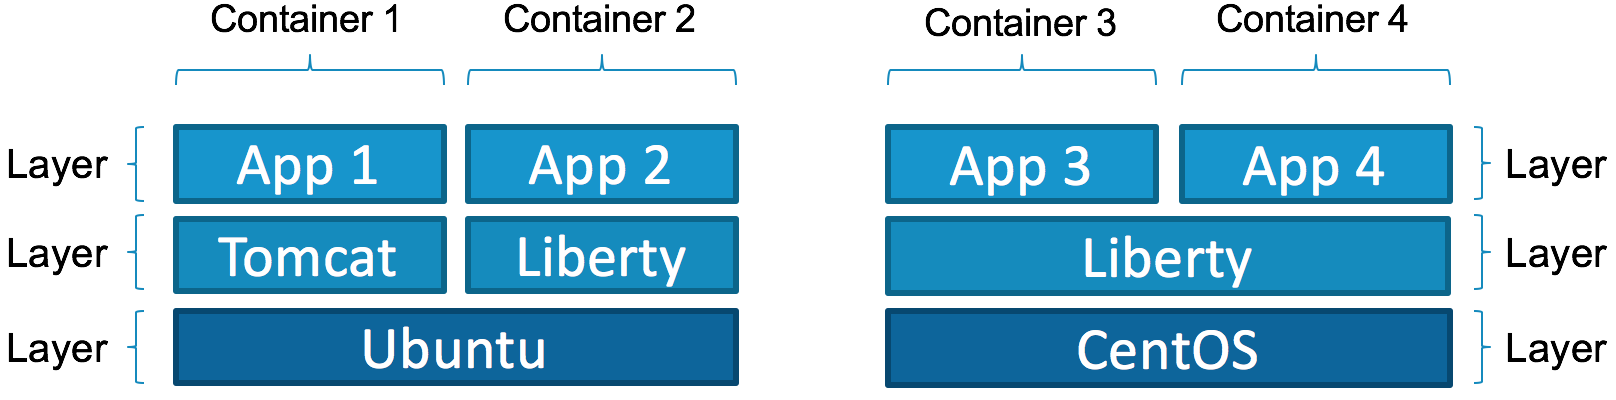 Docker containers using layers